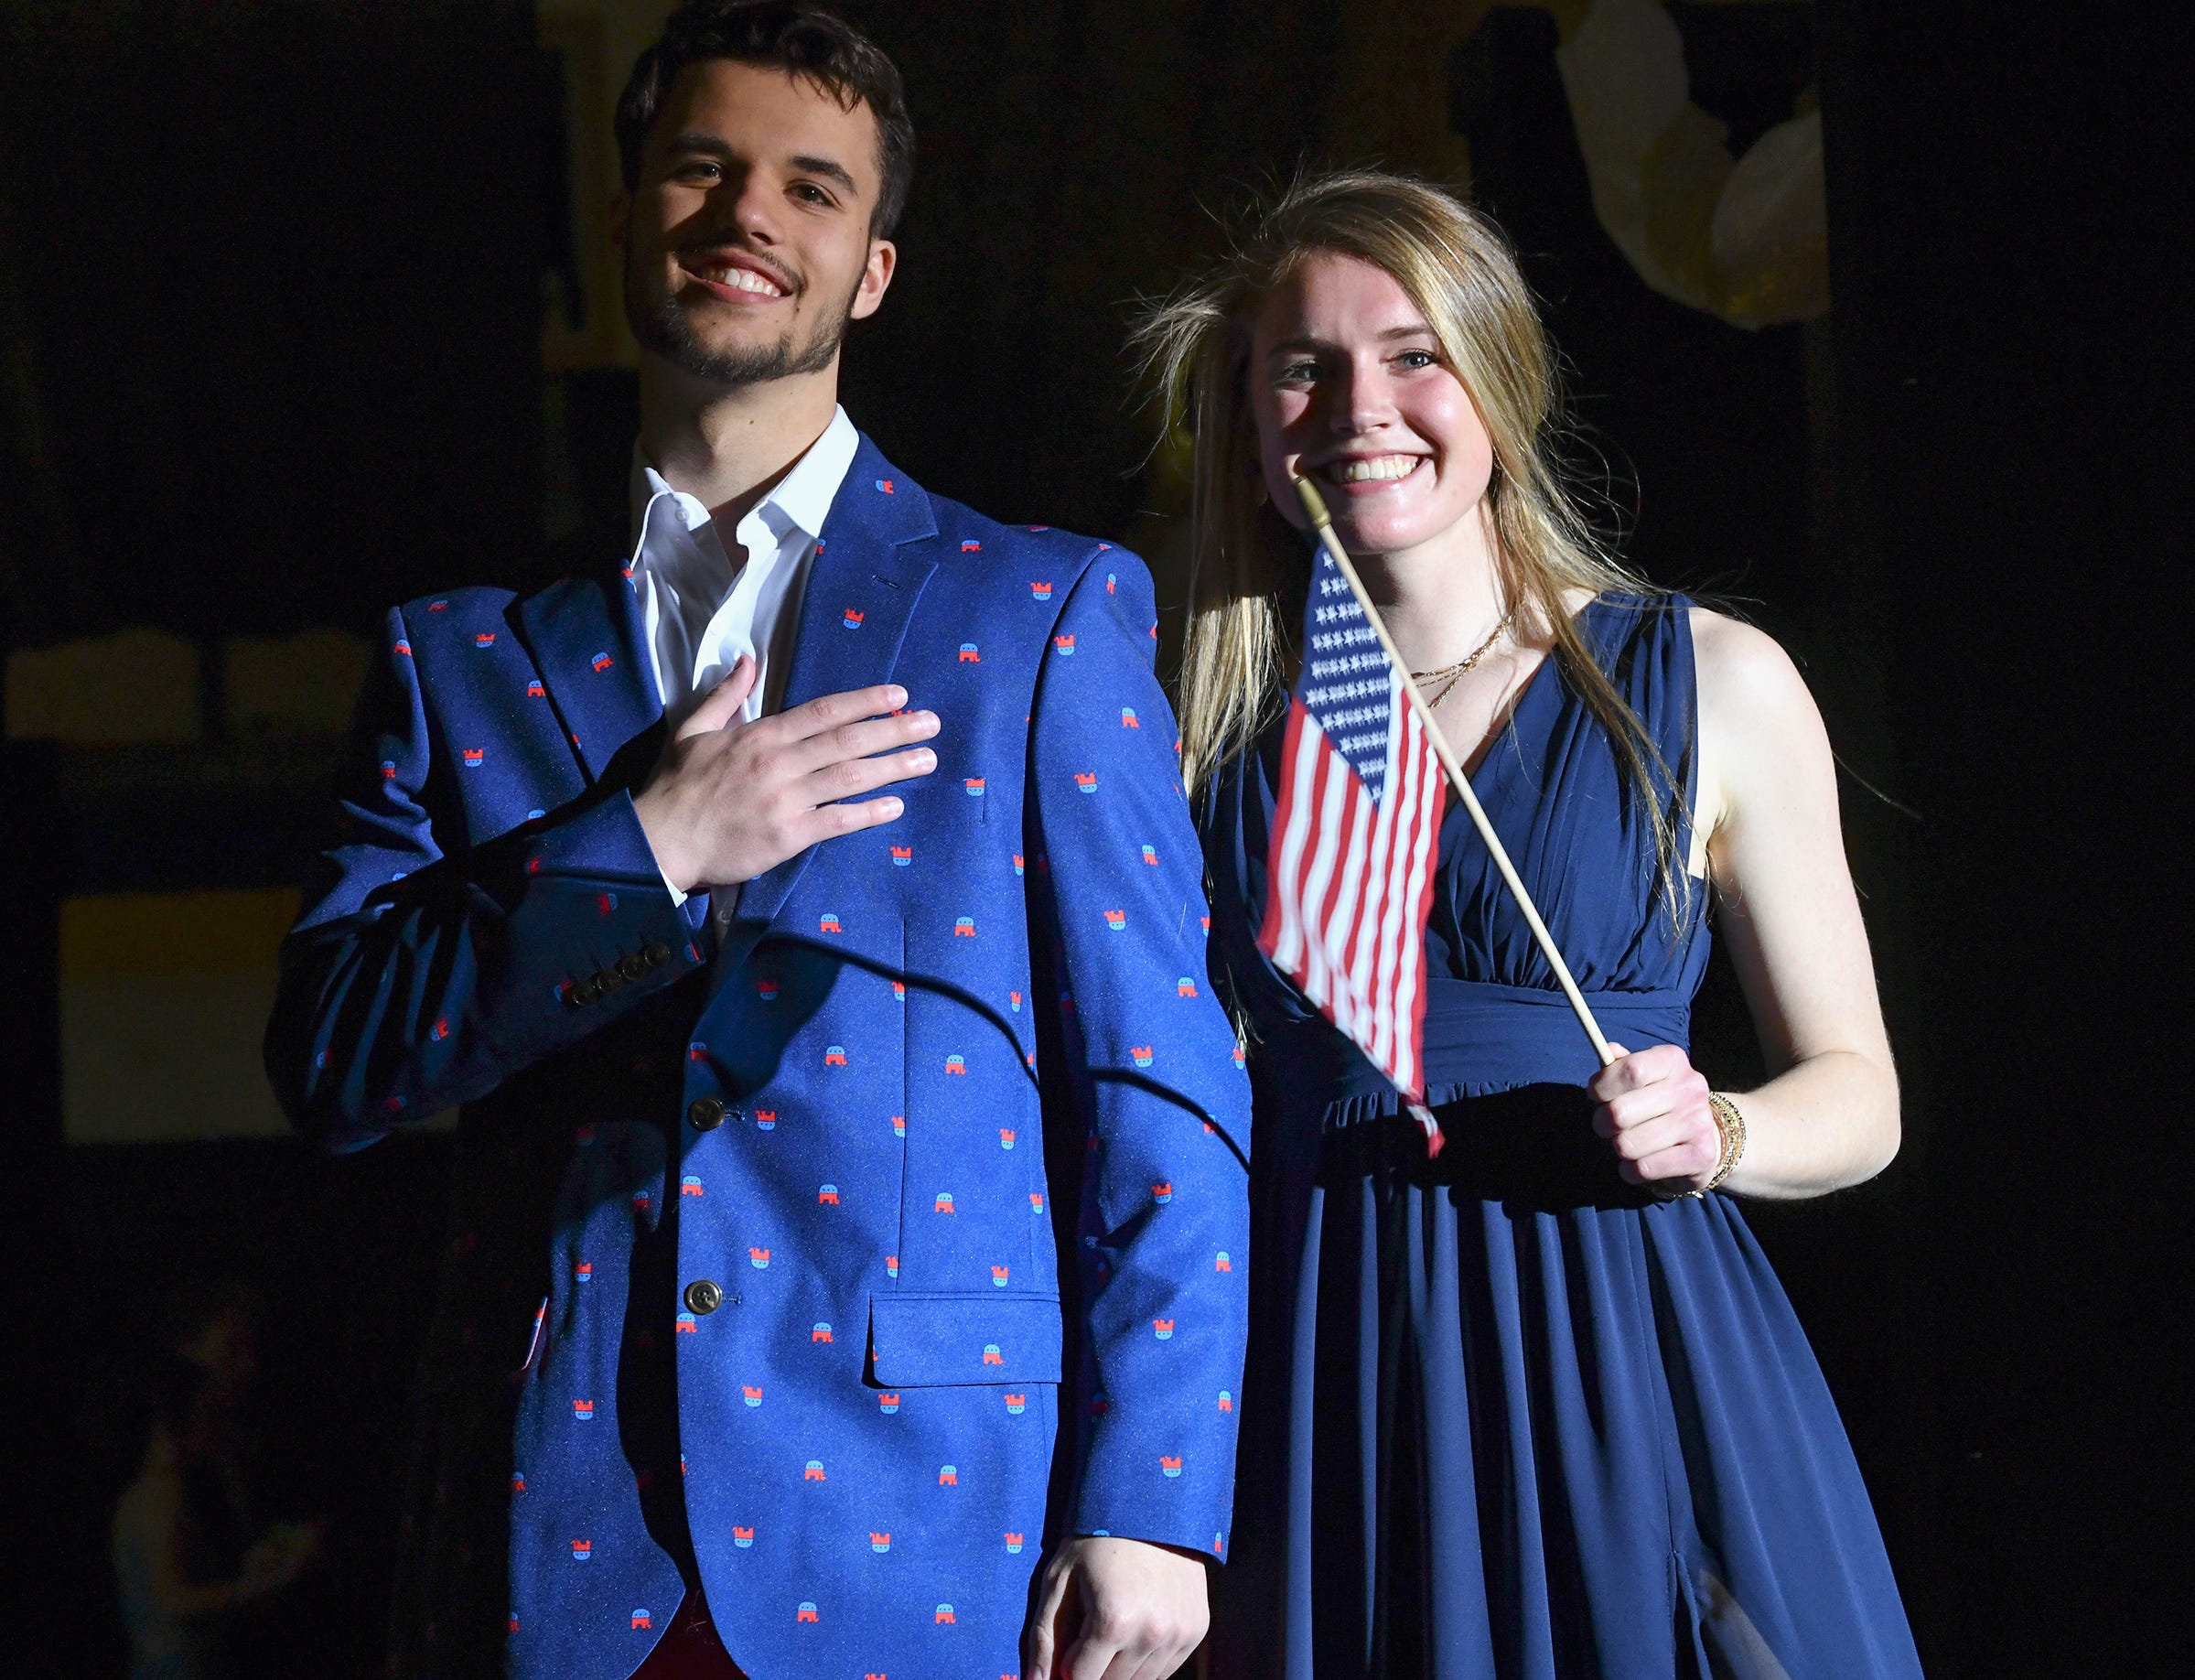 Students strike a patriotic pose during prom grand march Saturday, May 4, at Cathedral High School in St. Cloud.